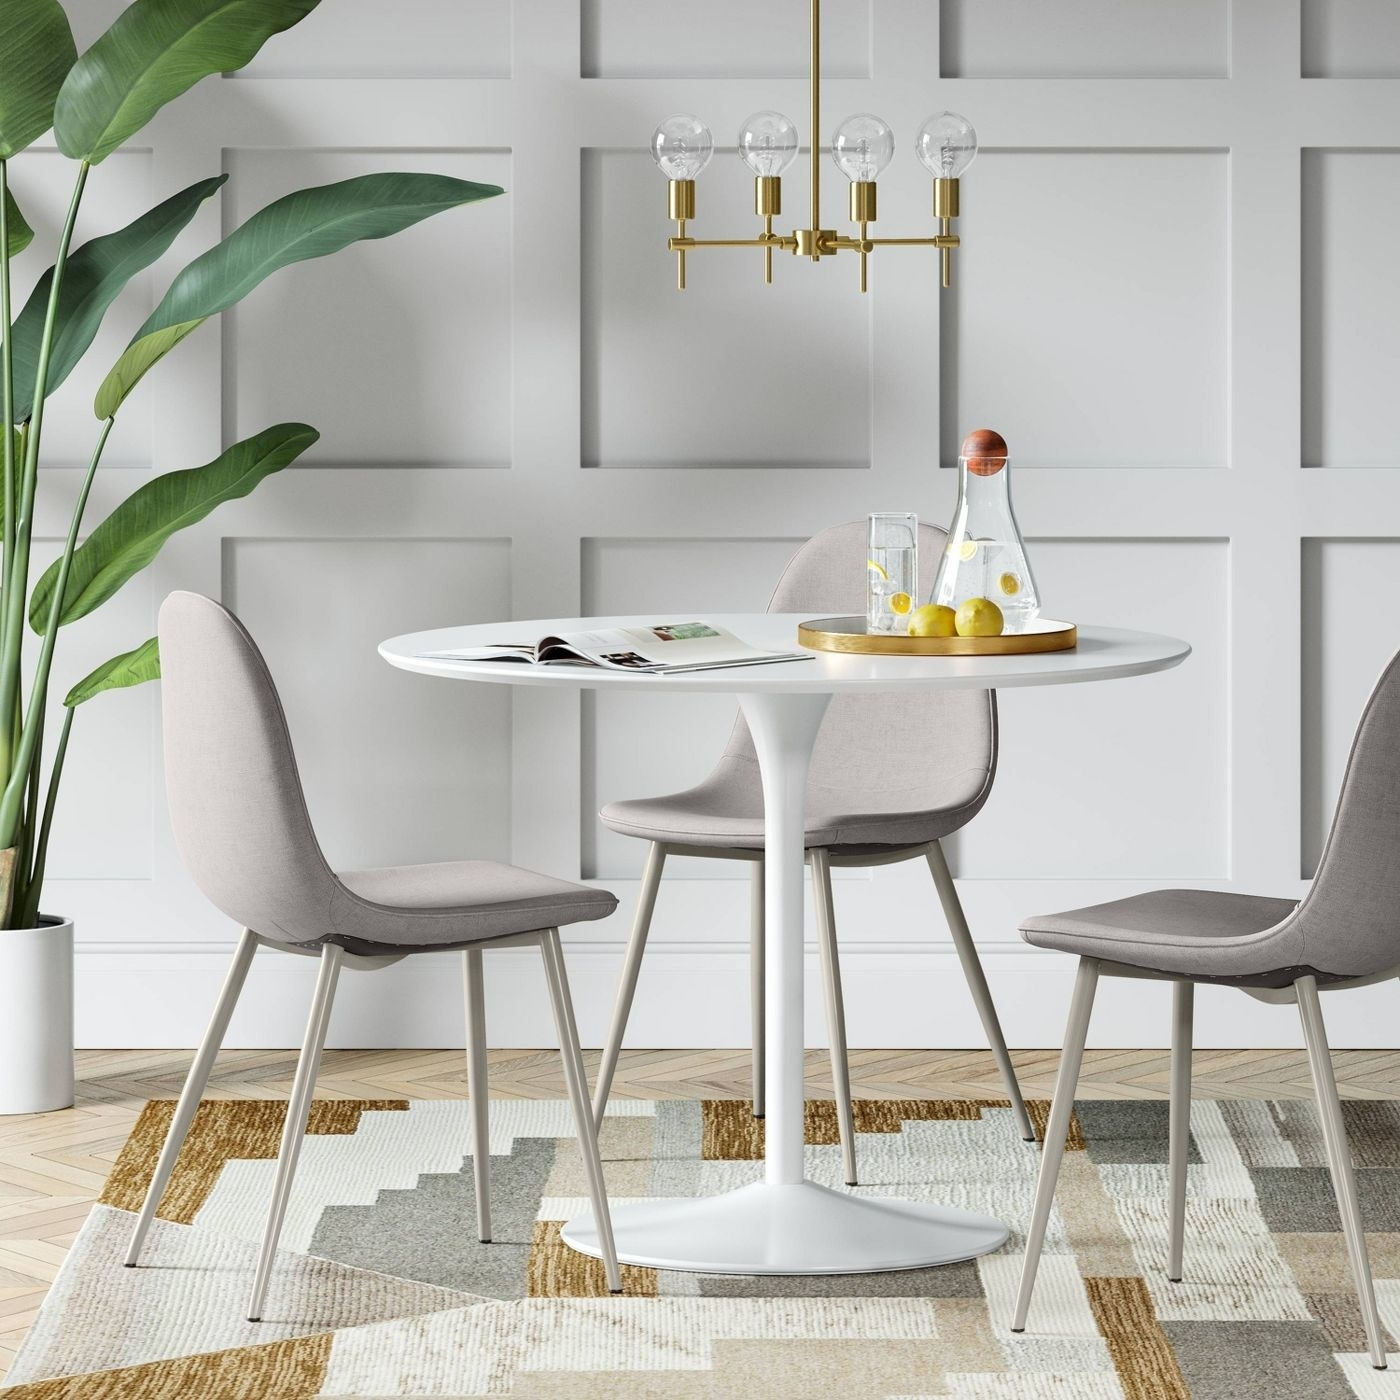 grey upholstered dining chairs around a round white table